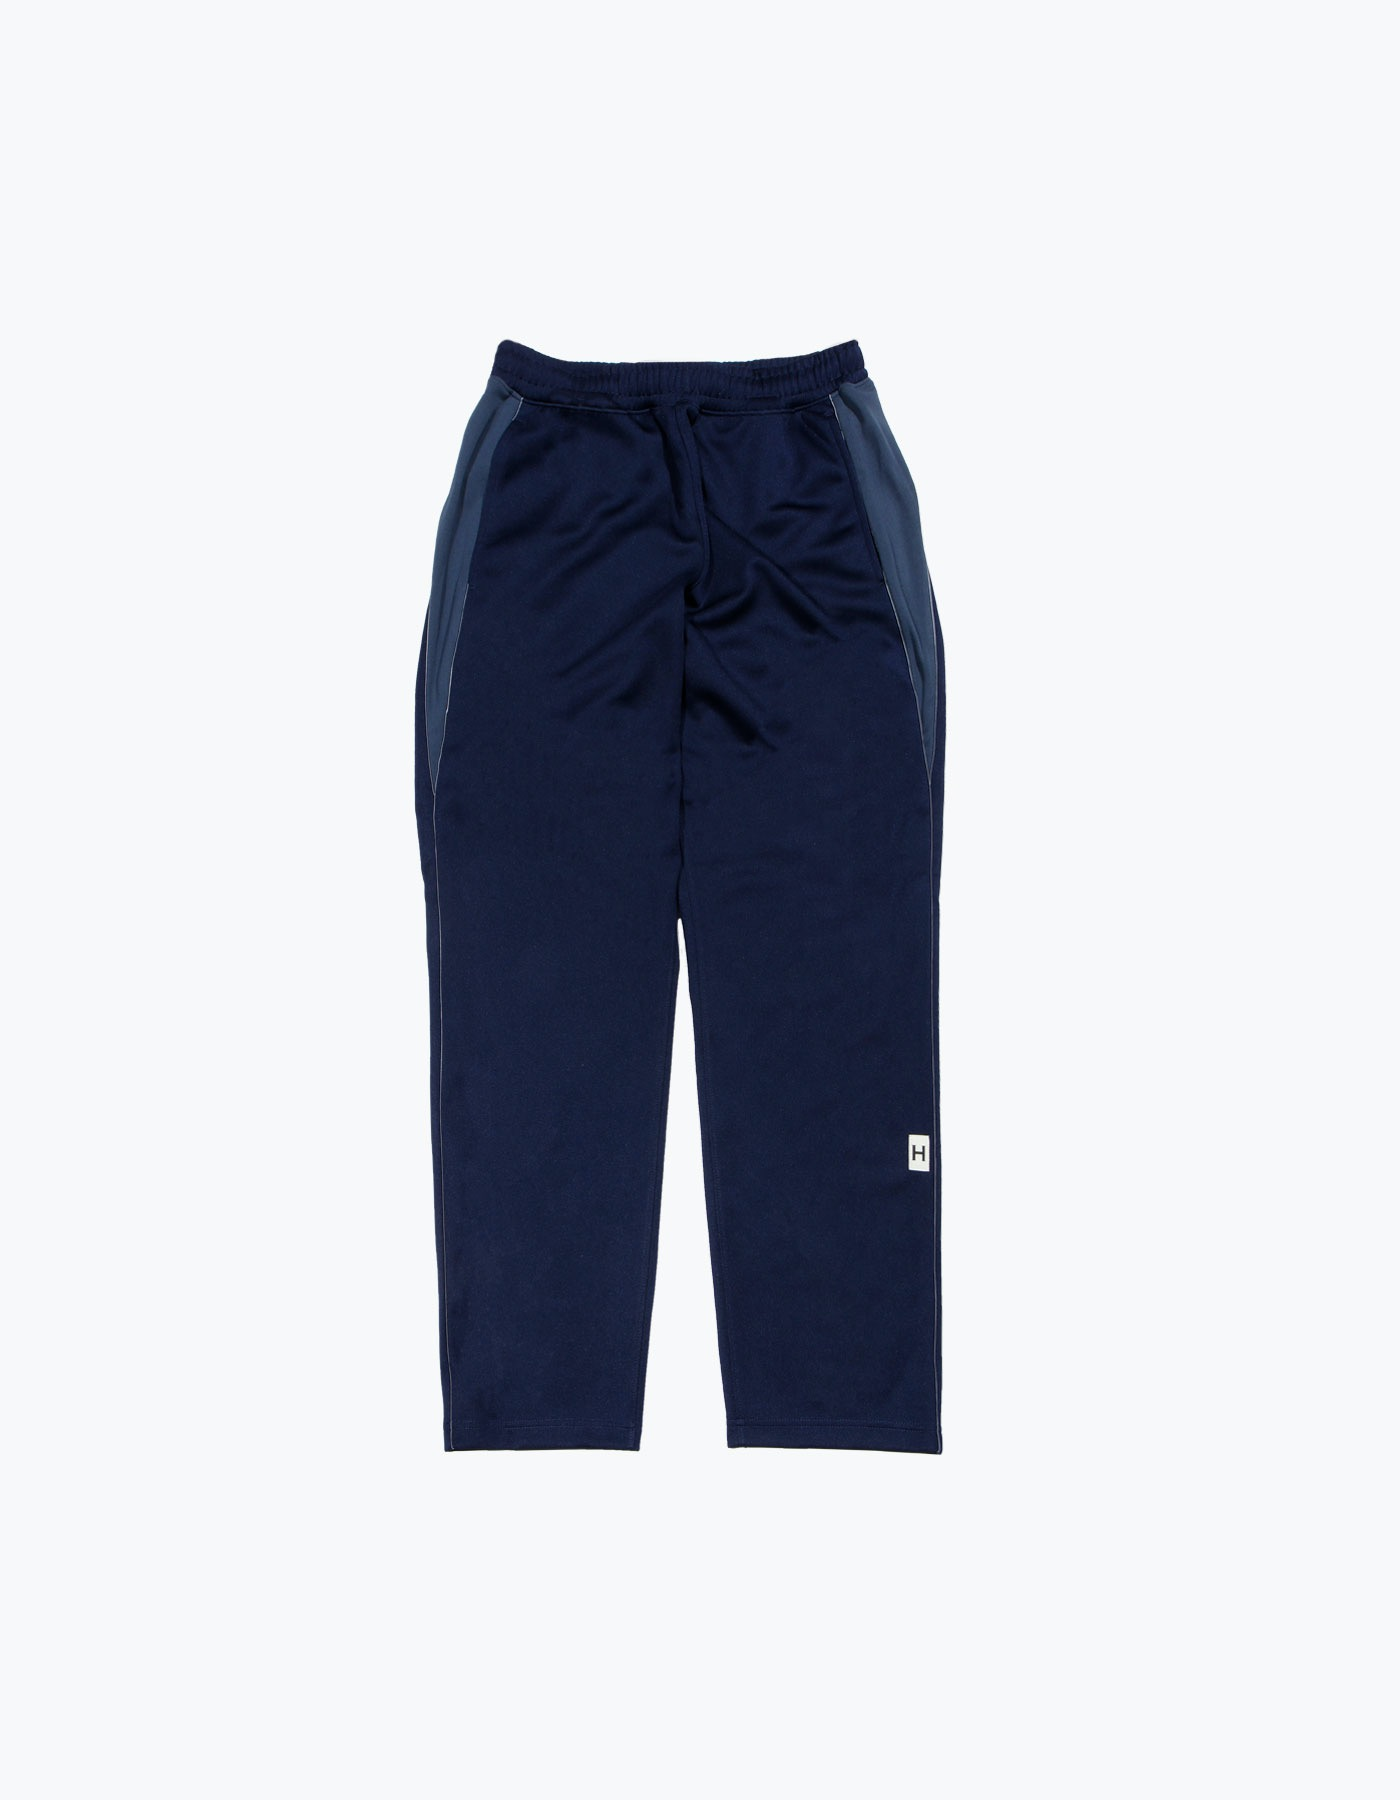 CRICKET PANTS II / NAVY